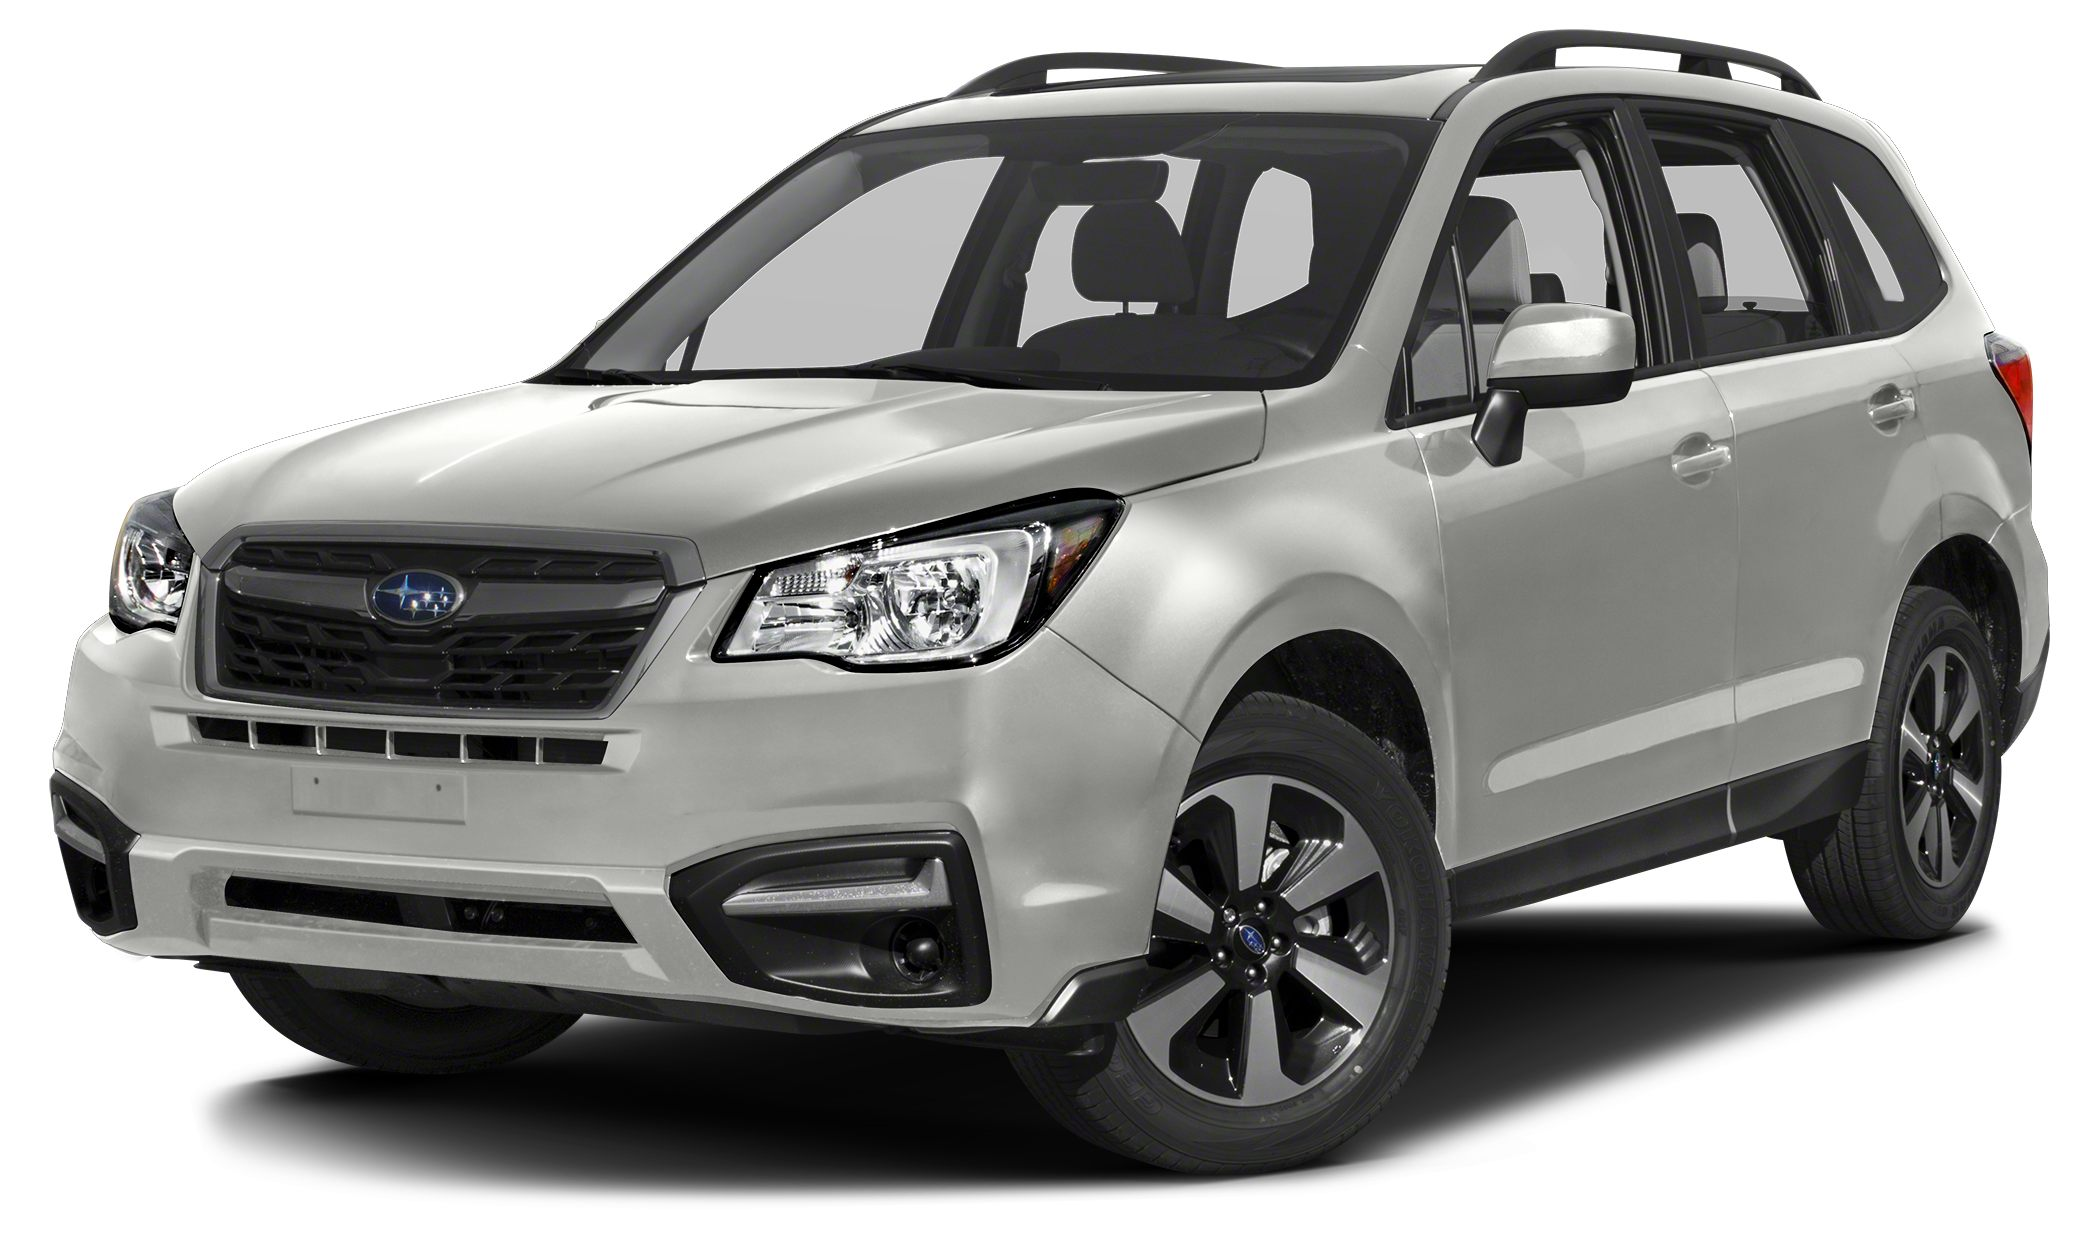 2017 Subaru Forester 25i Premium CARFAX One-Owner MOON ROOF Crystal White Pearl 2017 Subaru For